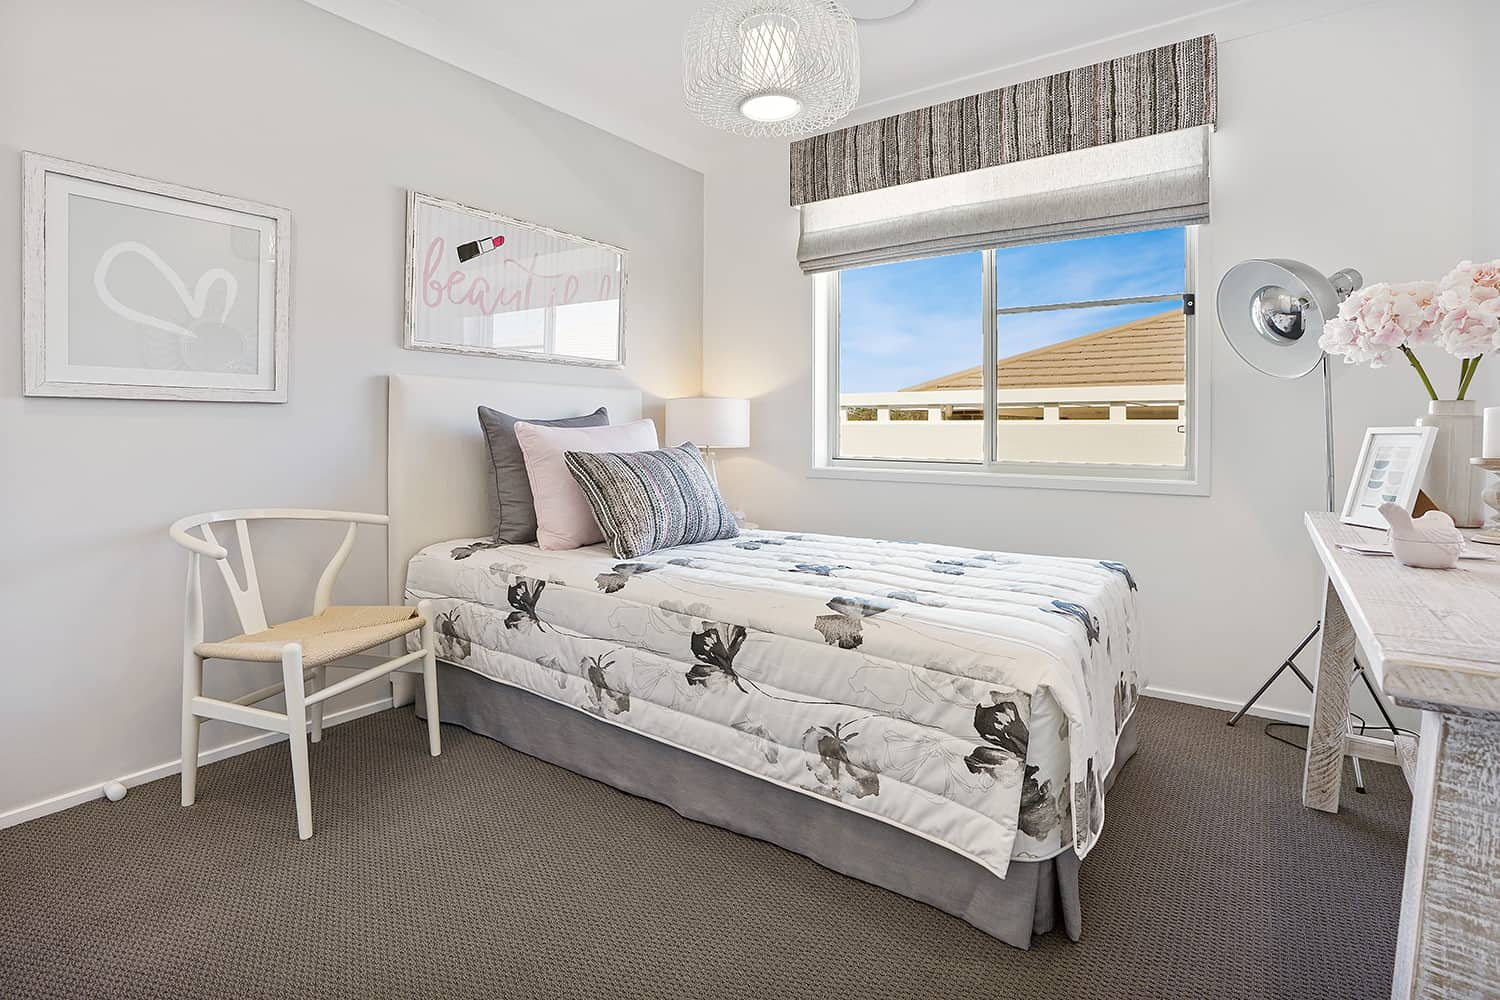 Harmony Four 23 - Bedroom image. On display at Housing World Nowra